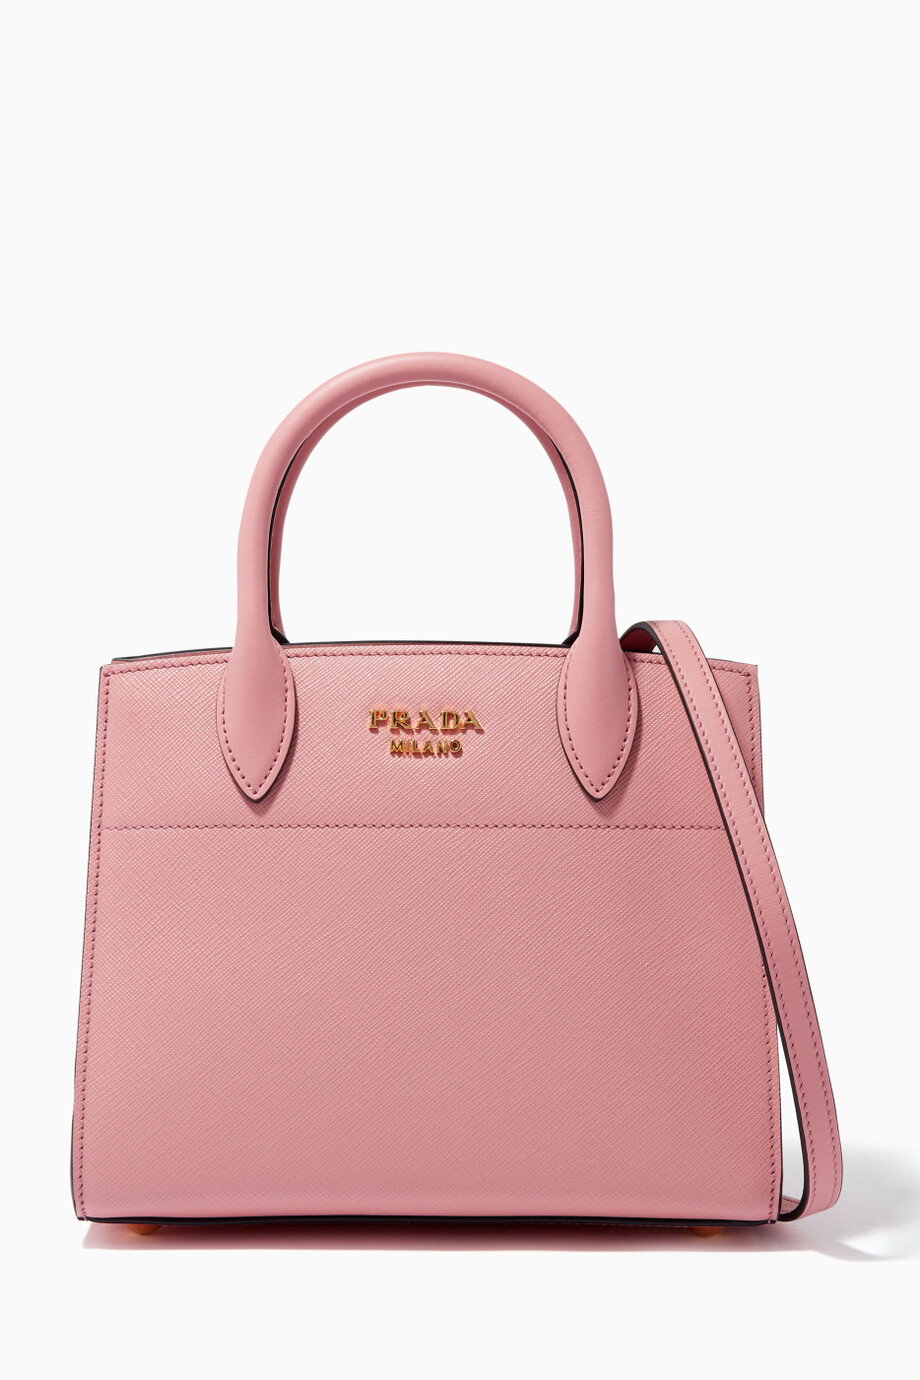 08143777752f Shop Prada Pink Pink Small Bibliothèque Saffiano City Tote Bag for ...